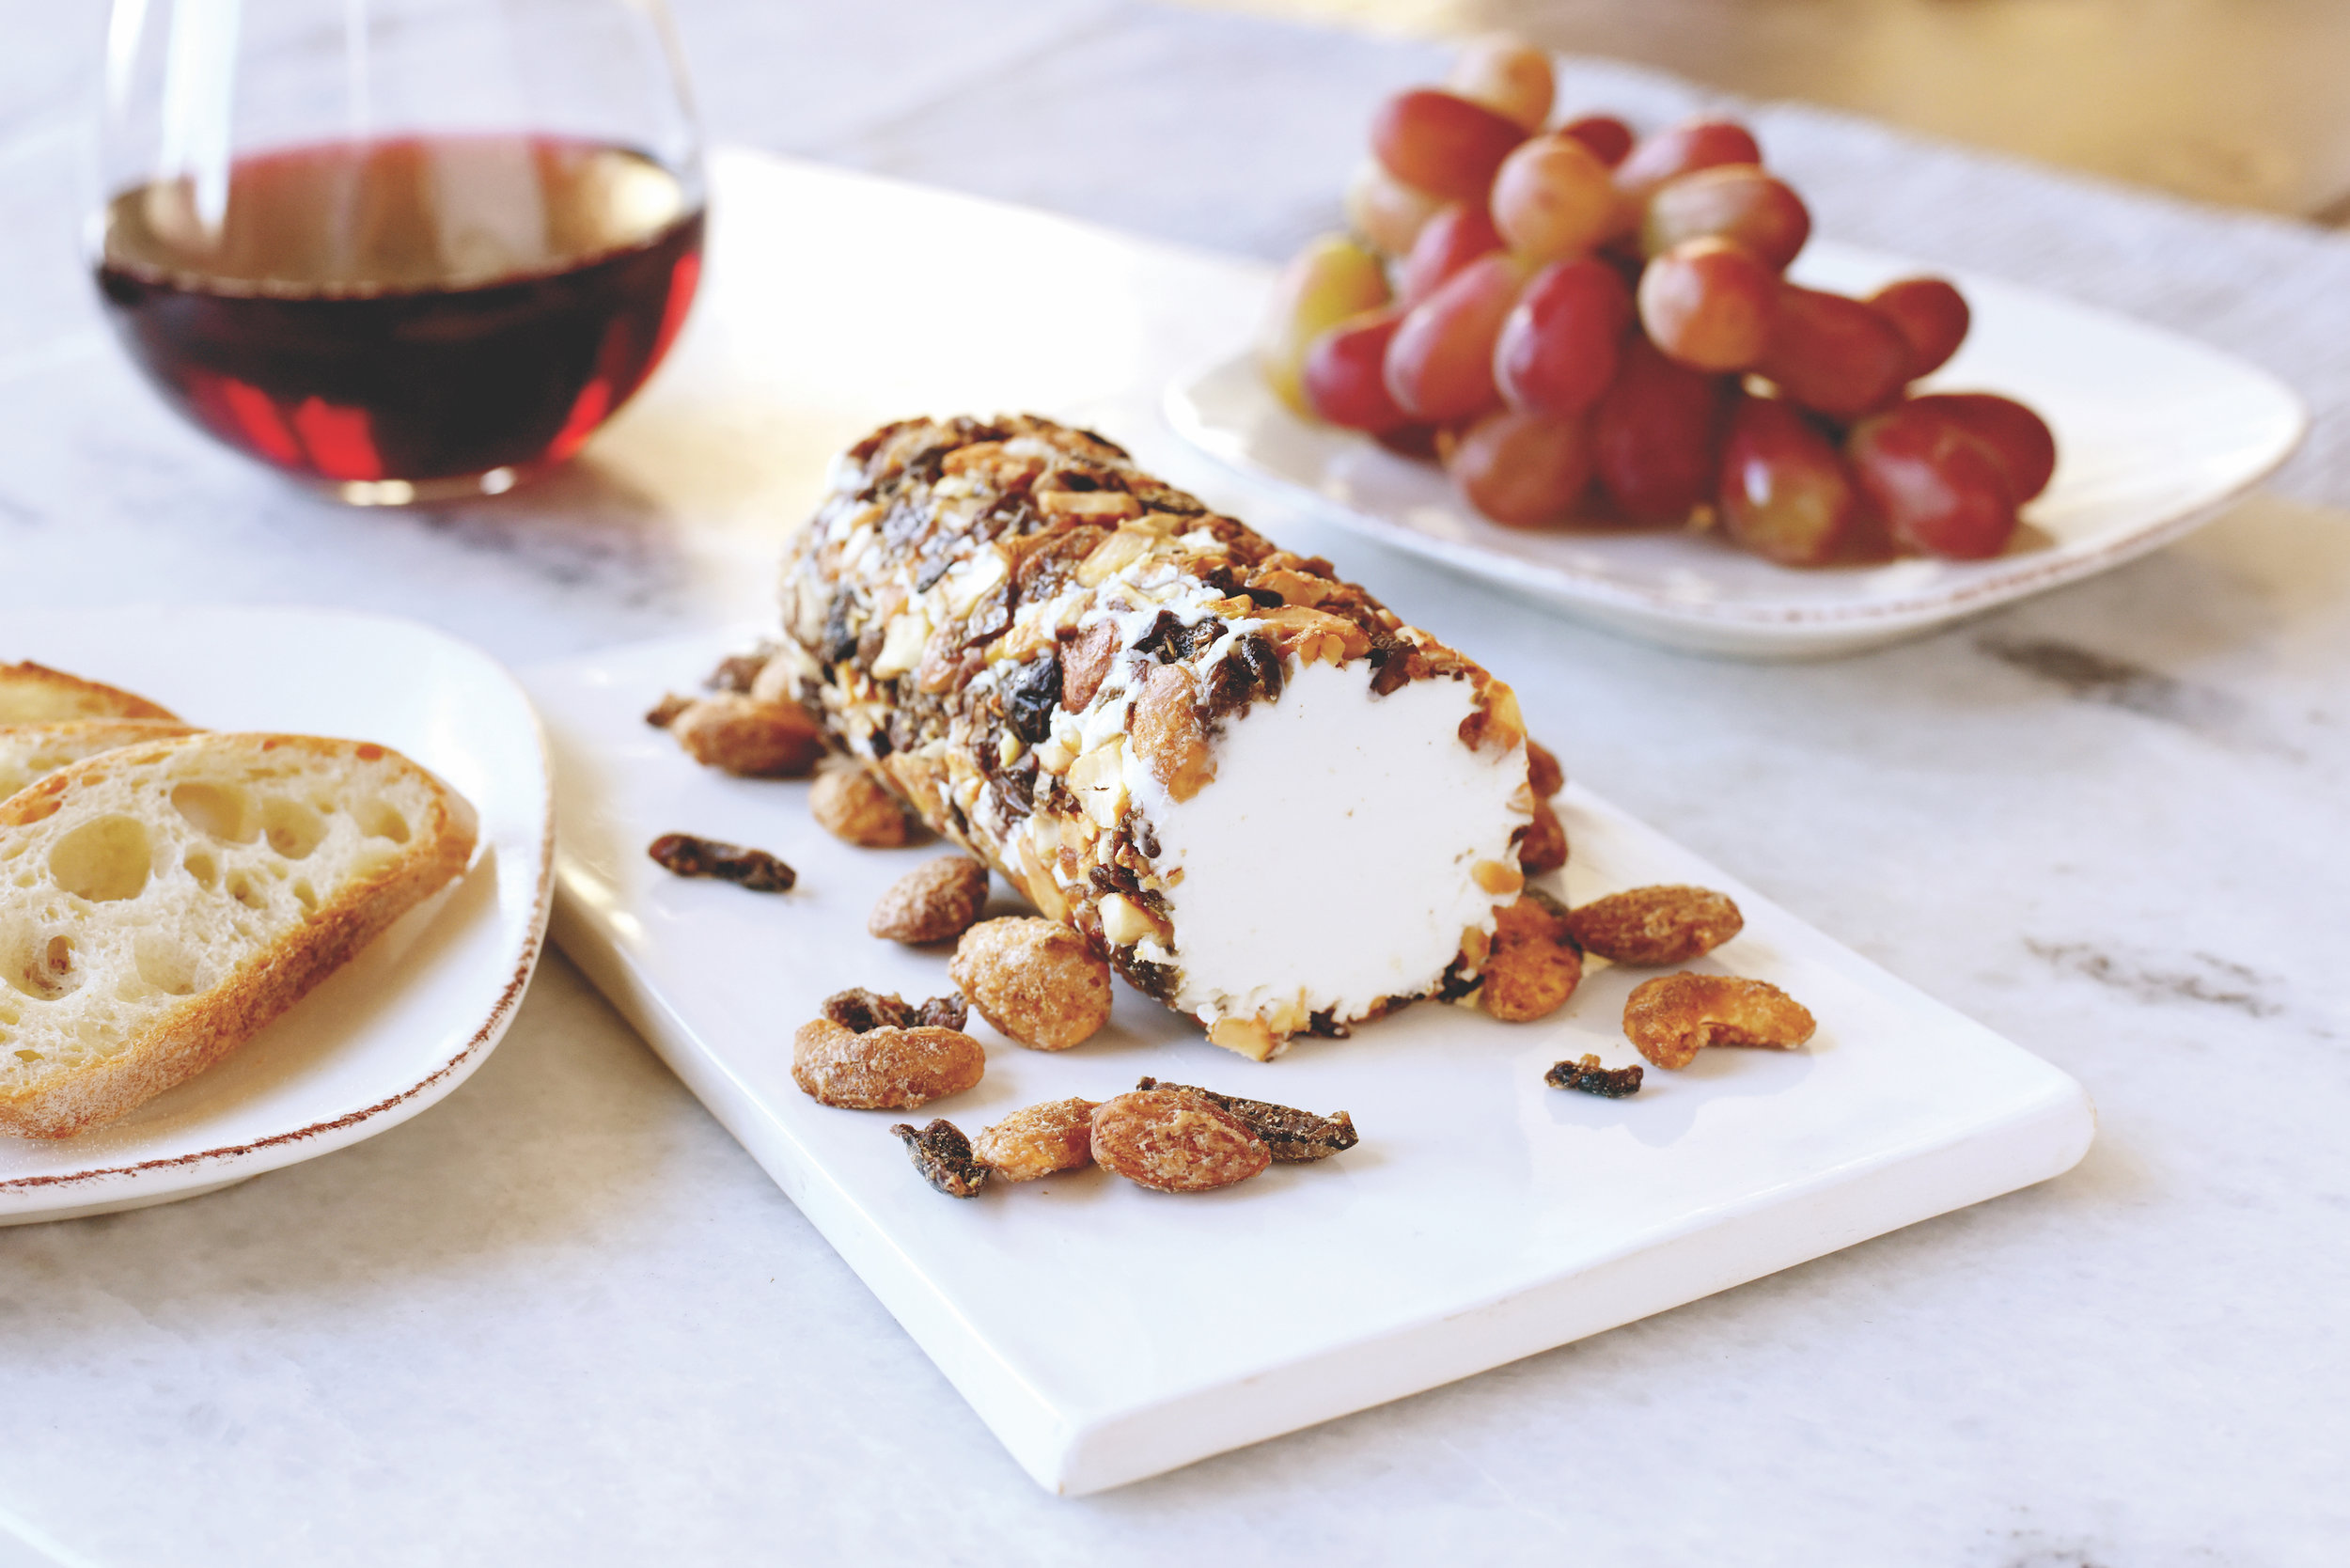 BobbySue's Nuts Over Olives Goat Cheese Log Recipe